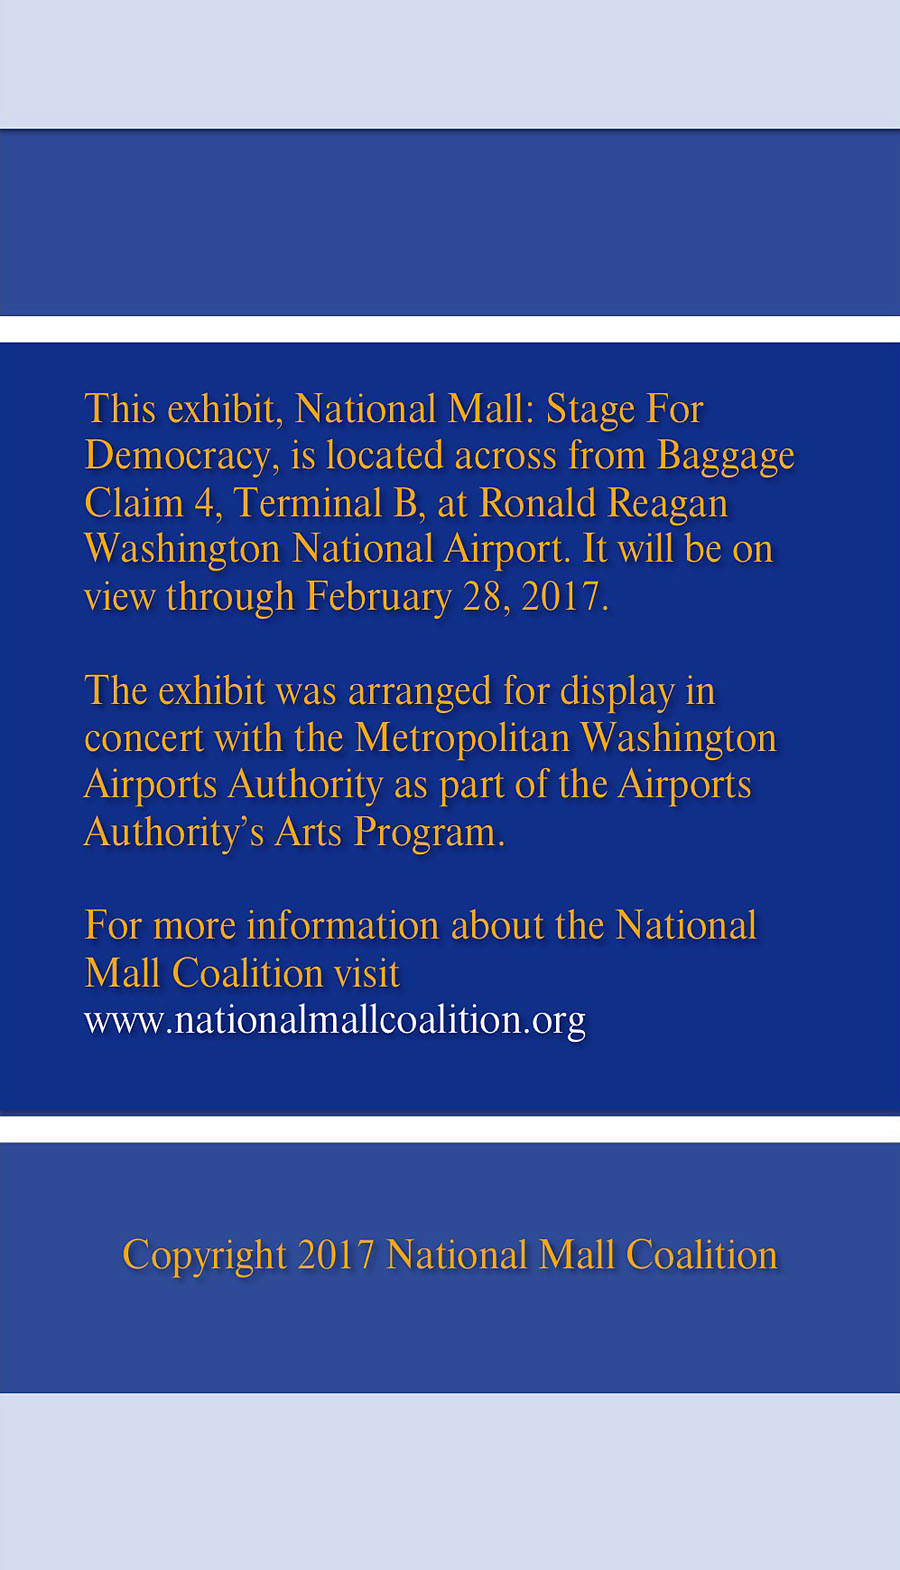 The National Mall: Stage For Democracy Exhibit at Reagan National Airport: More Information